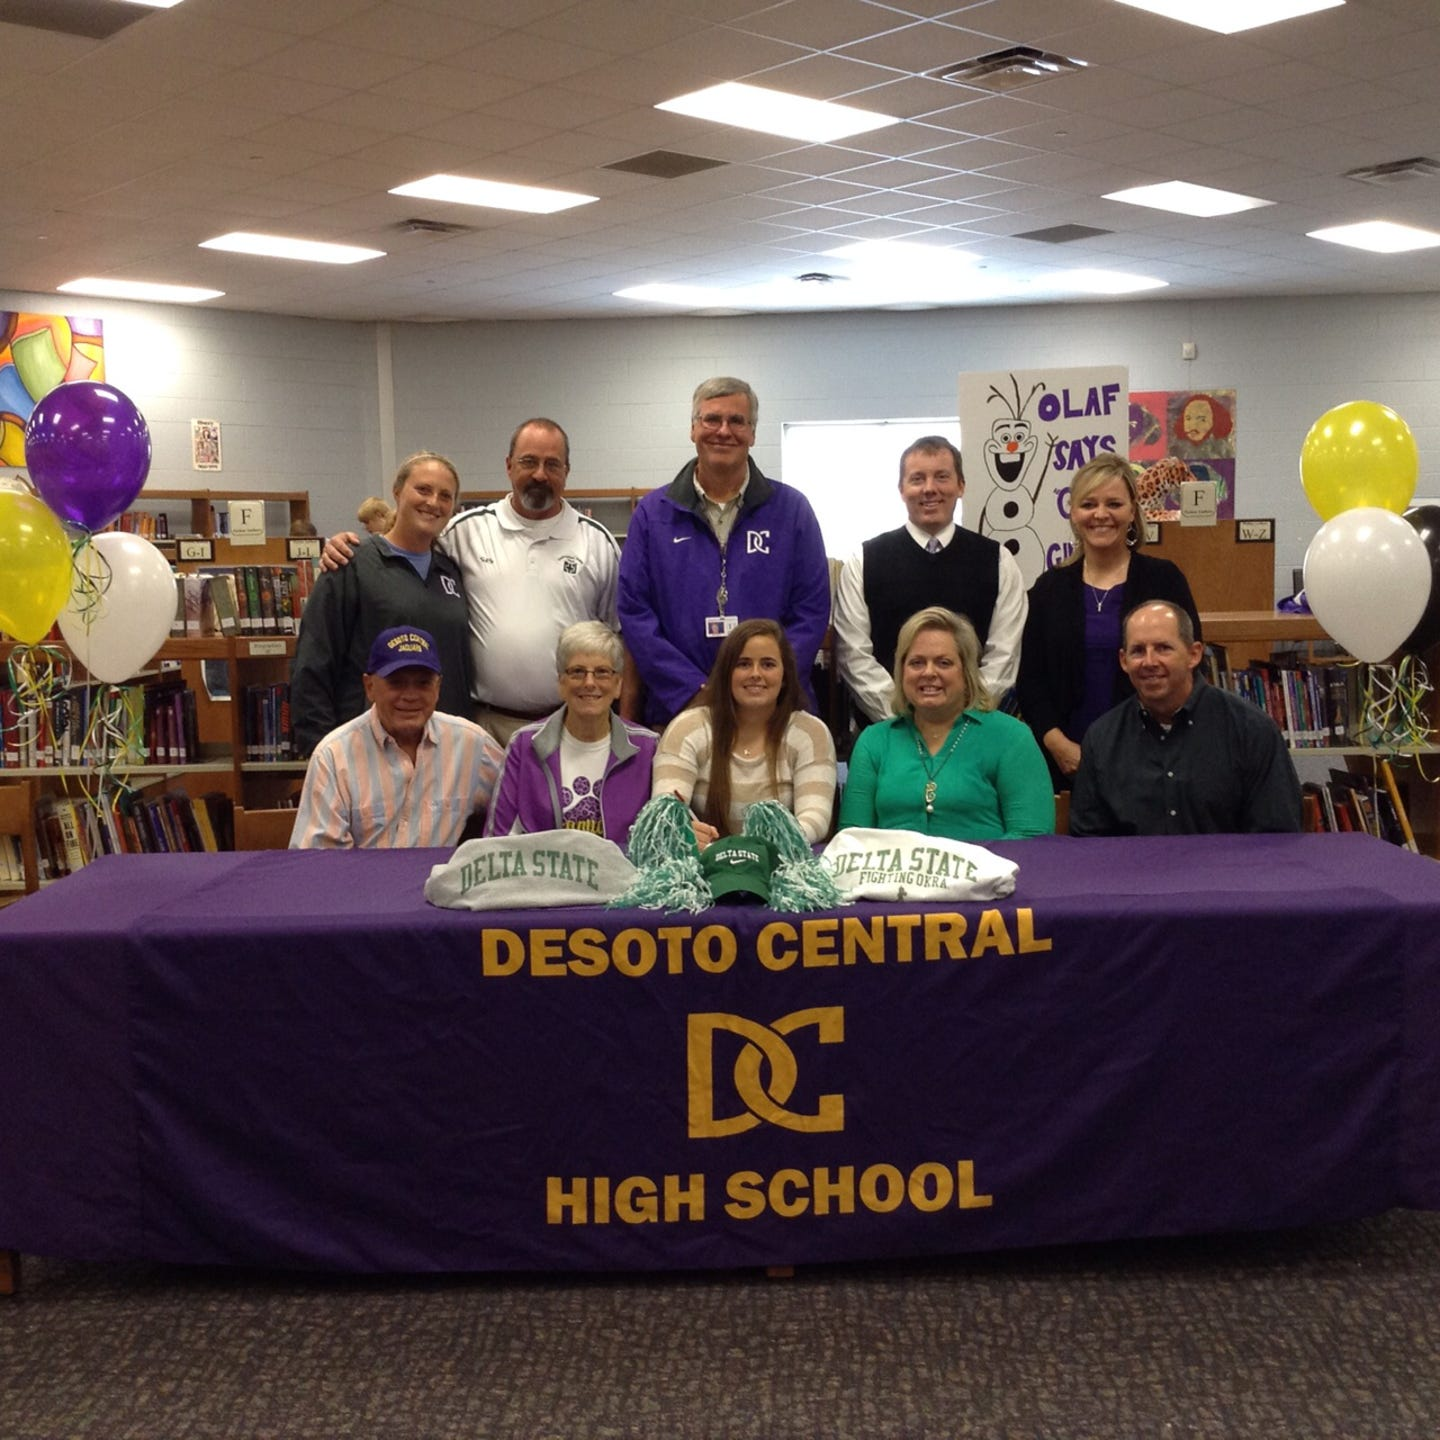 DeSoto Central High School through the years